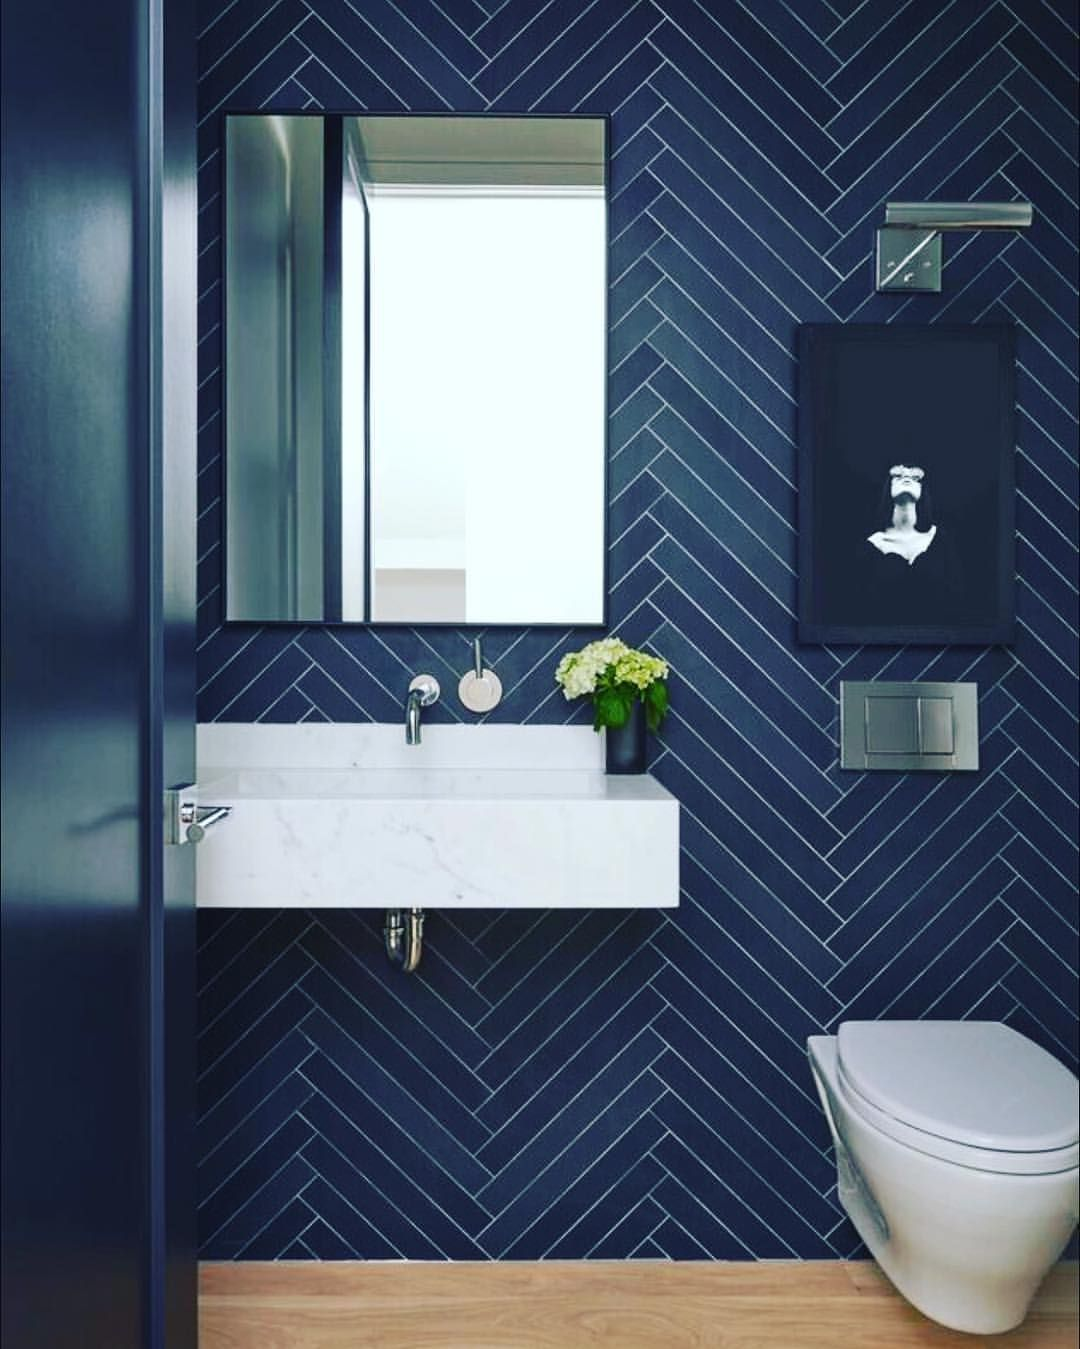 Iconic Vintage Inspirations For A Brighter And Colorful Day Explore Our Design World Of Brands Dark Blue Bathrooms Powder Room Tile Small Bathroom Makeover